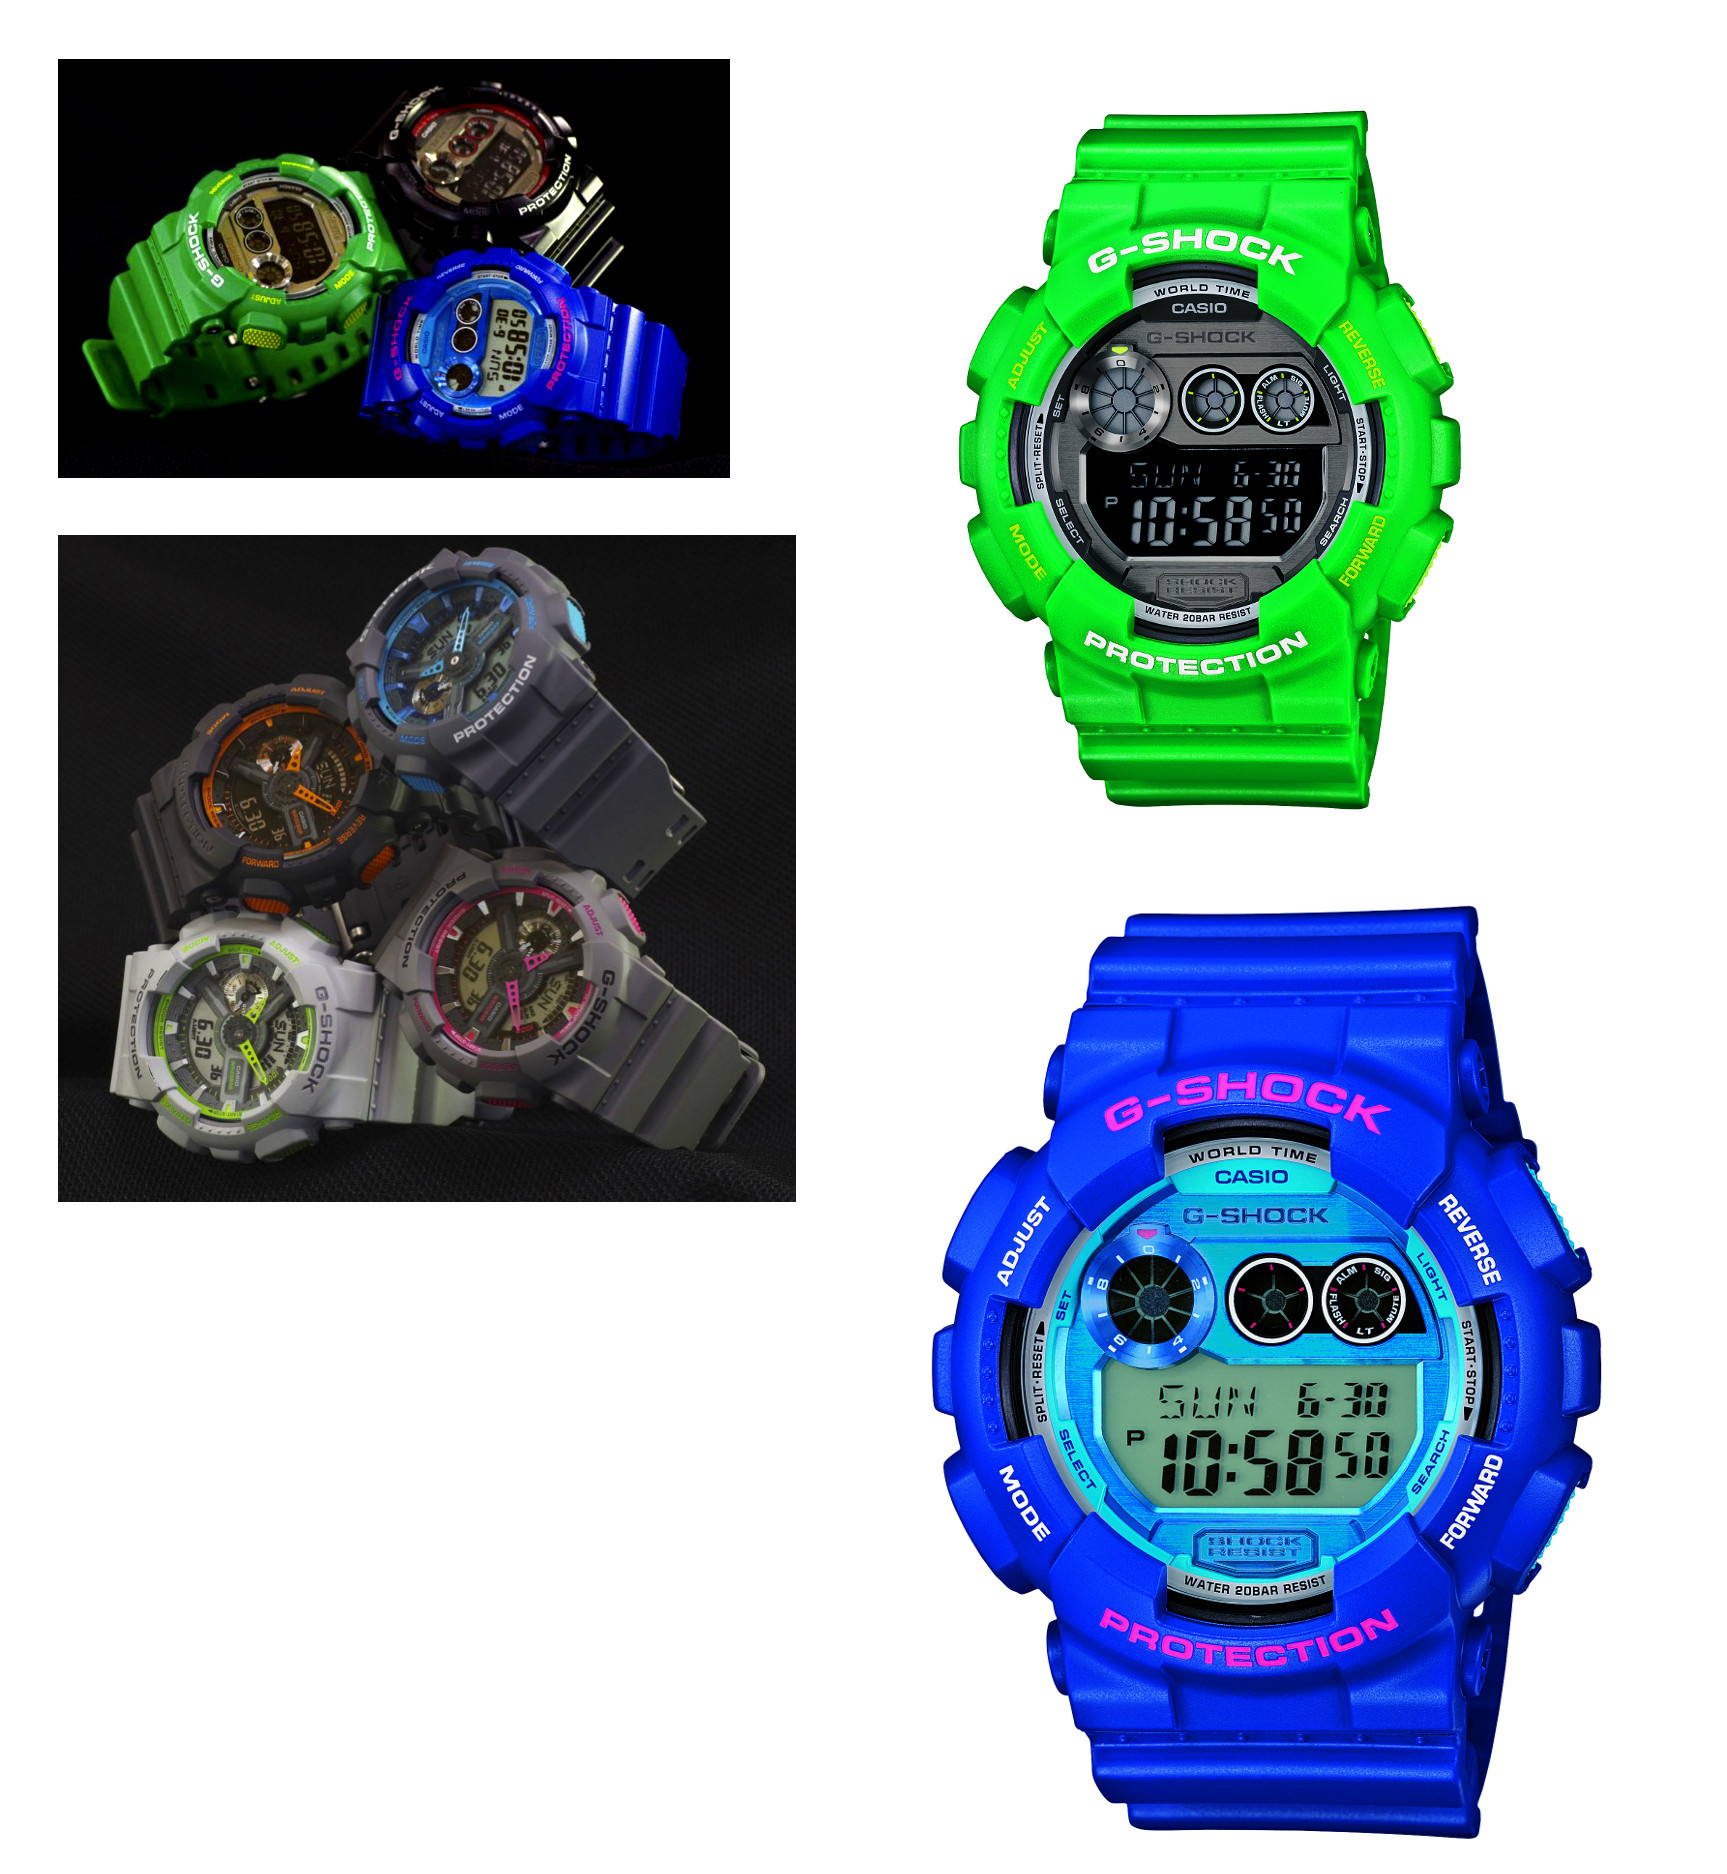 nouvelles montres casio g shock des mod les aux couleurs des quipes sportives am ricaines. Black Bedroom Furniture Sets. Home Design Ideas